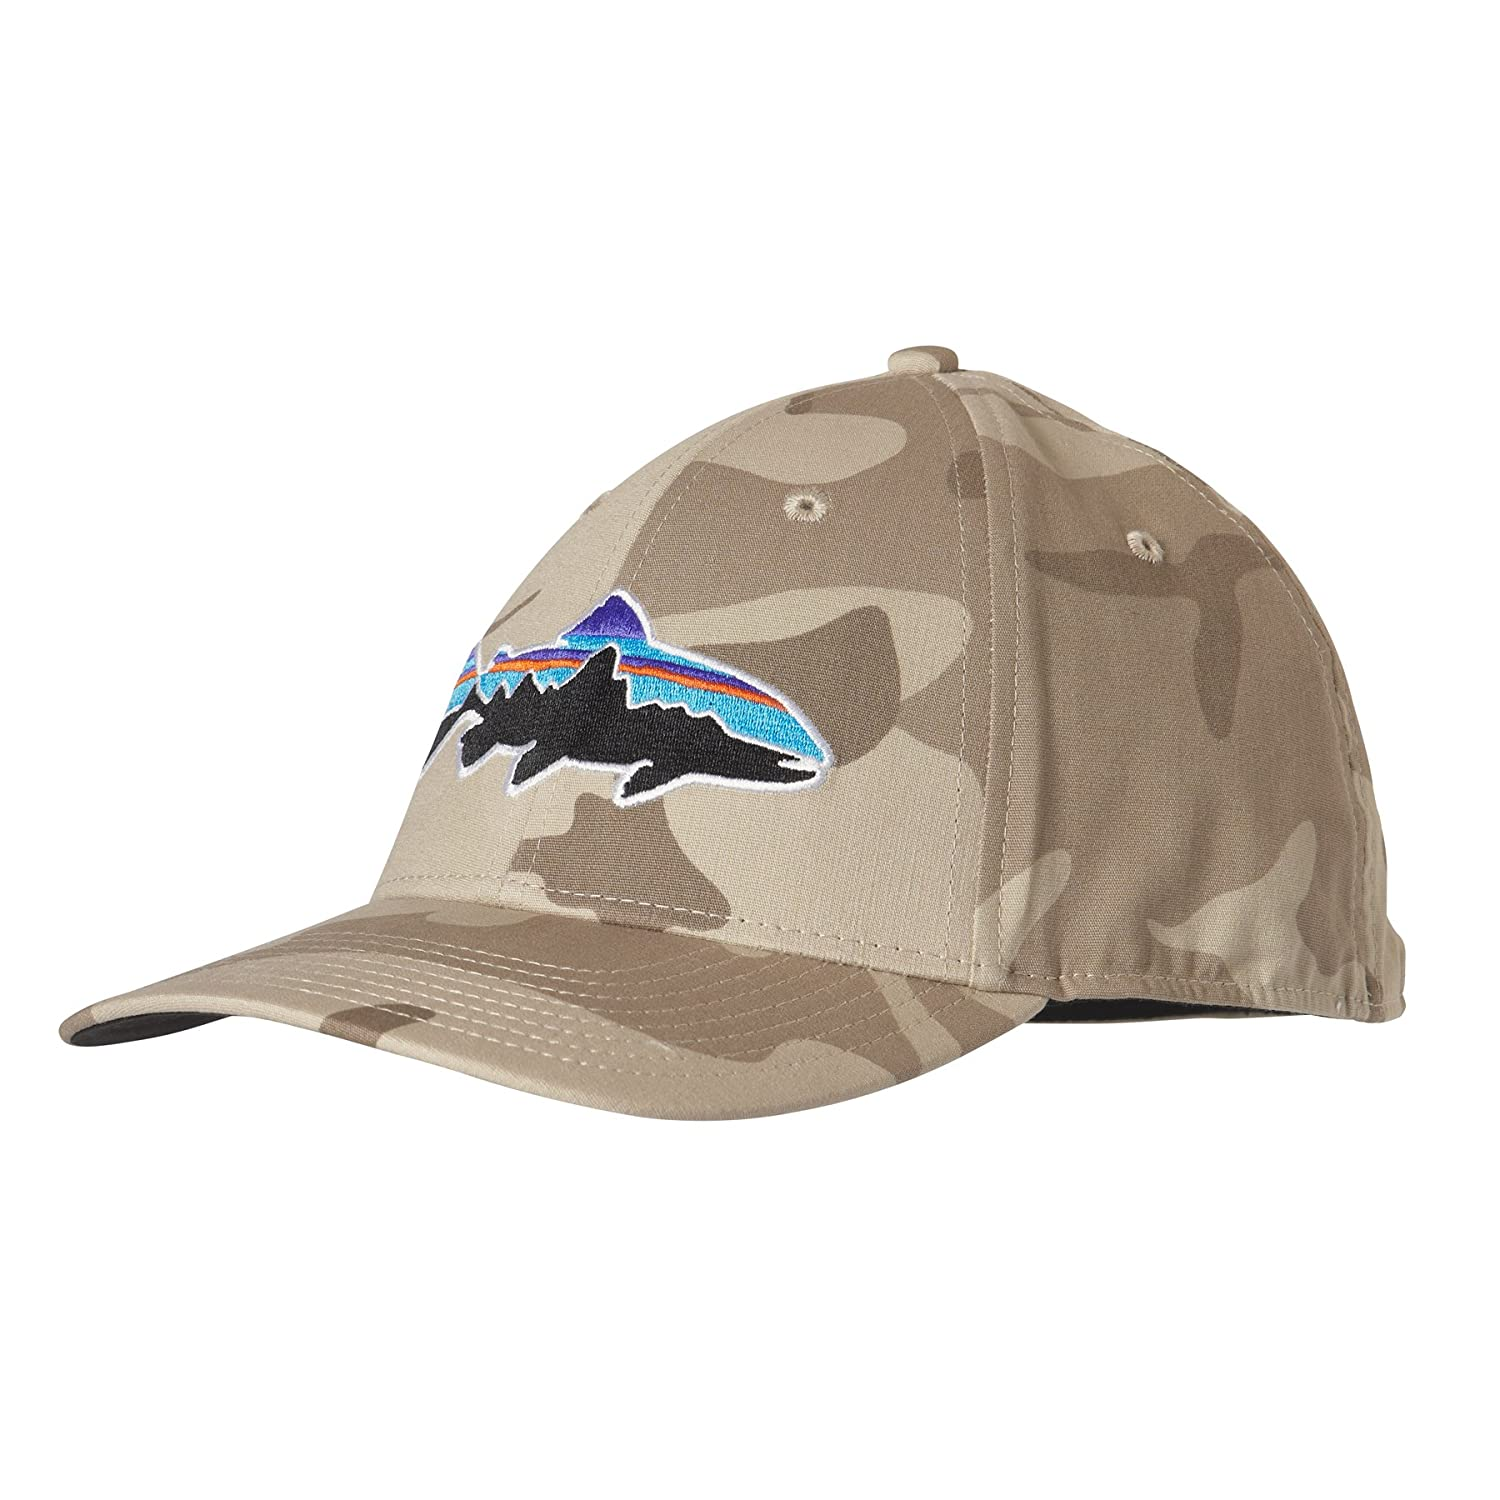 09226d84061be Patagonia Forest Camo El Cap Khaki Fitz Roy Trout Stretch Fit Hat   Amazon.ca  Clothing   Accessories